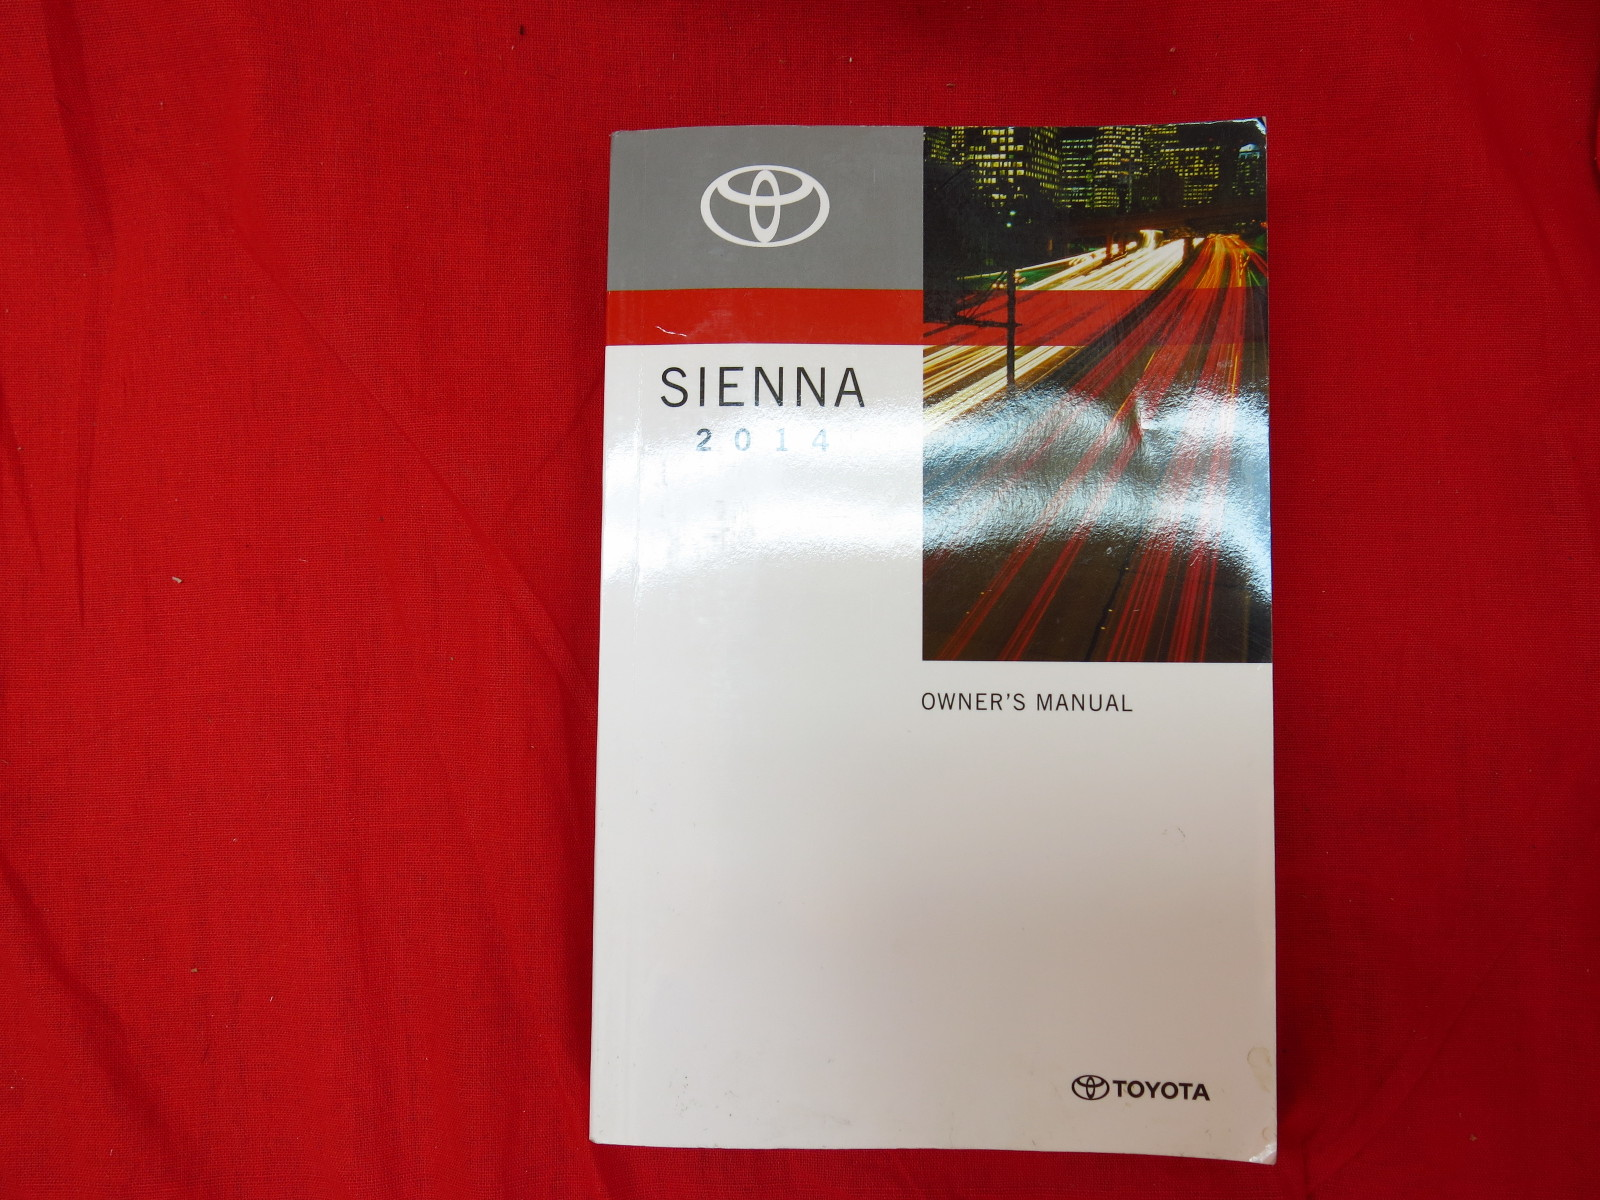 2014 toyota sienna owners manual guide book ebay. Black Bedroom Furniture Sets. Home Design Ideas